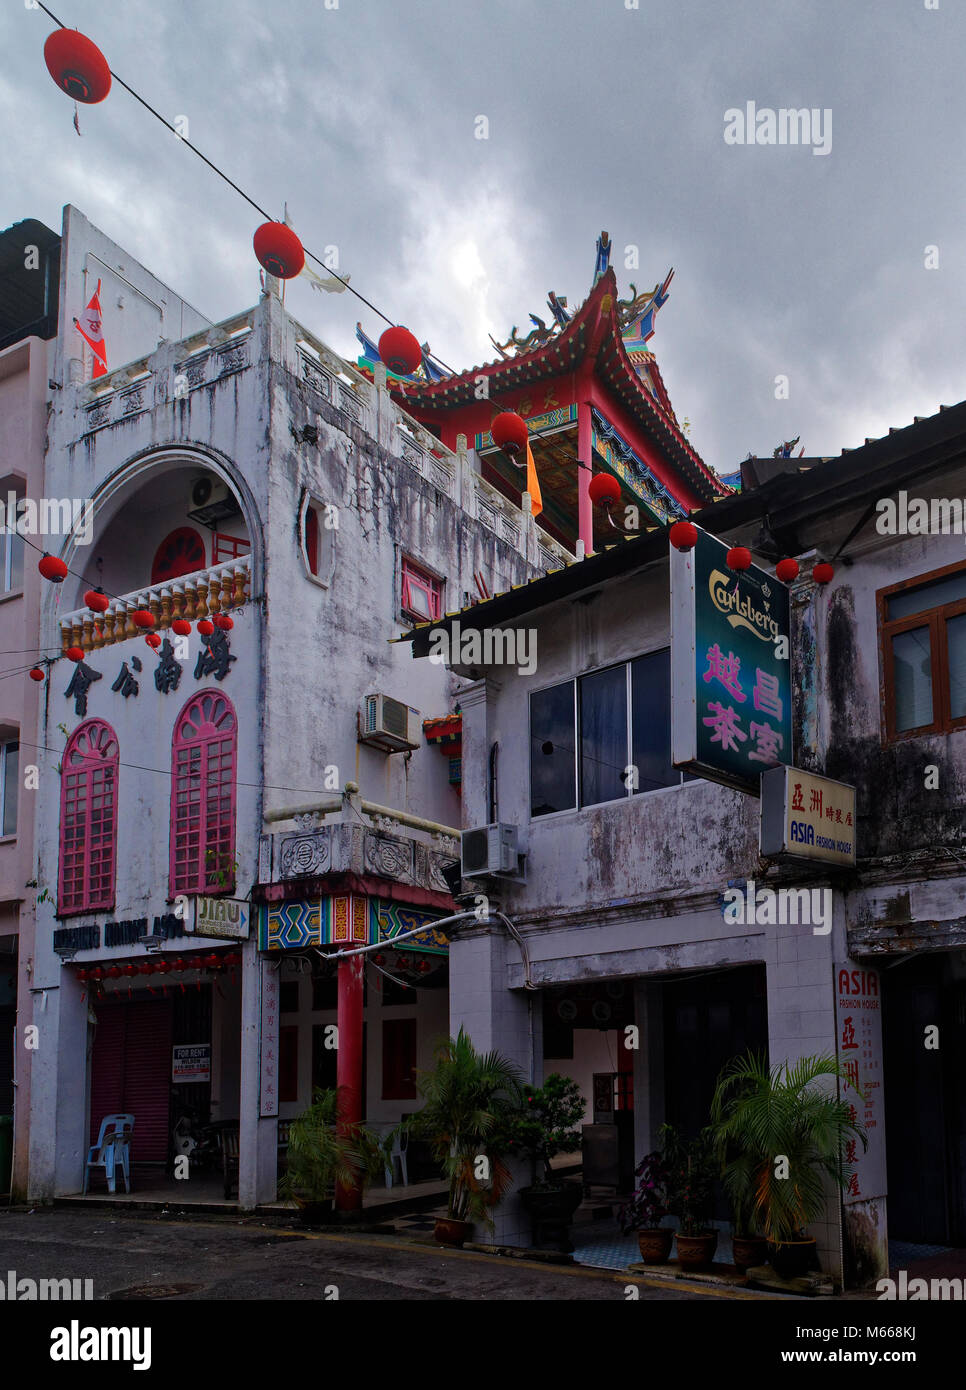 The Hainan Association Temple and building in Carpenter Street, Kuching, Sarawak, Malaysia - Stock Image